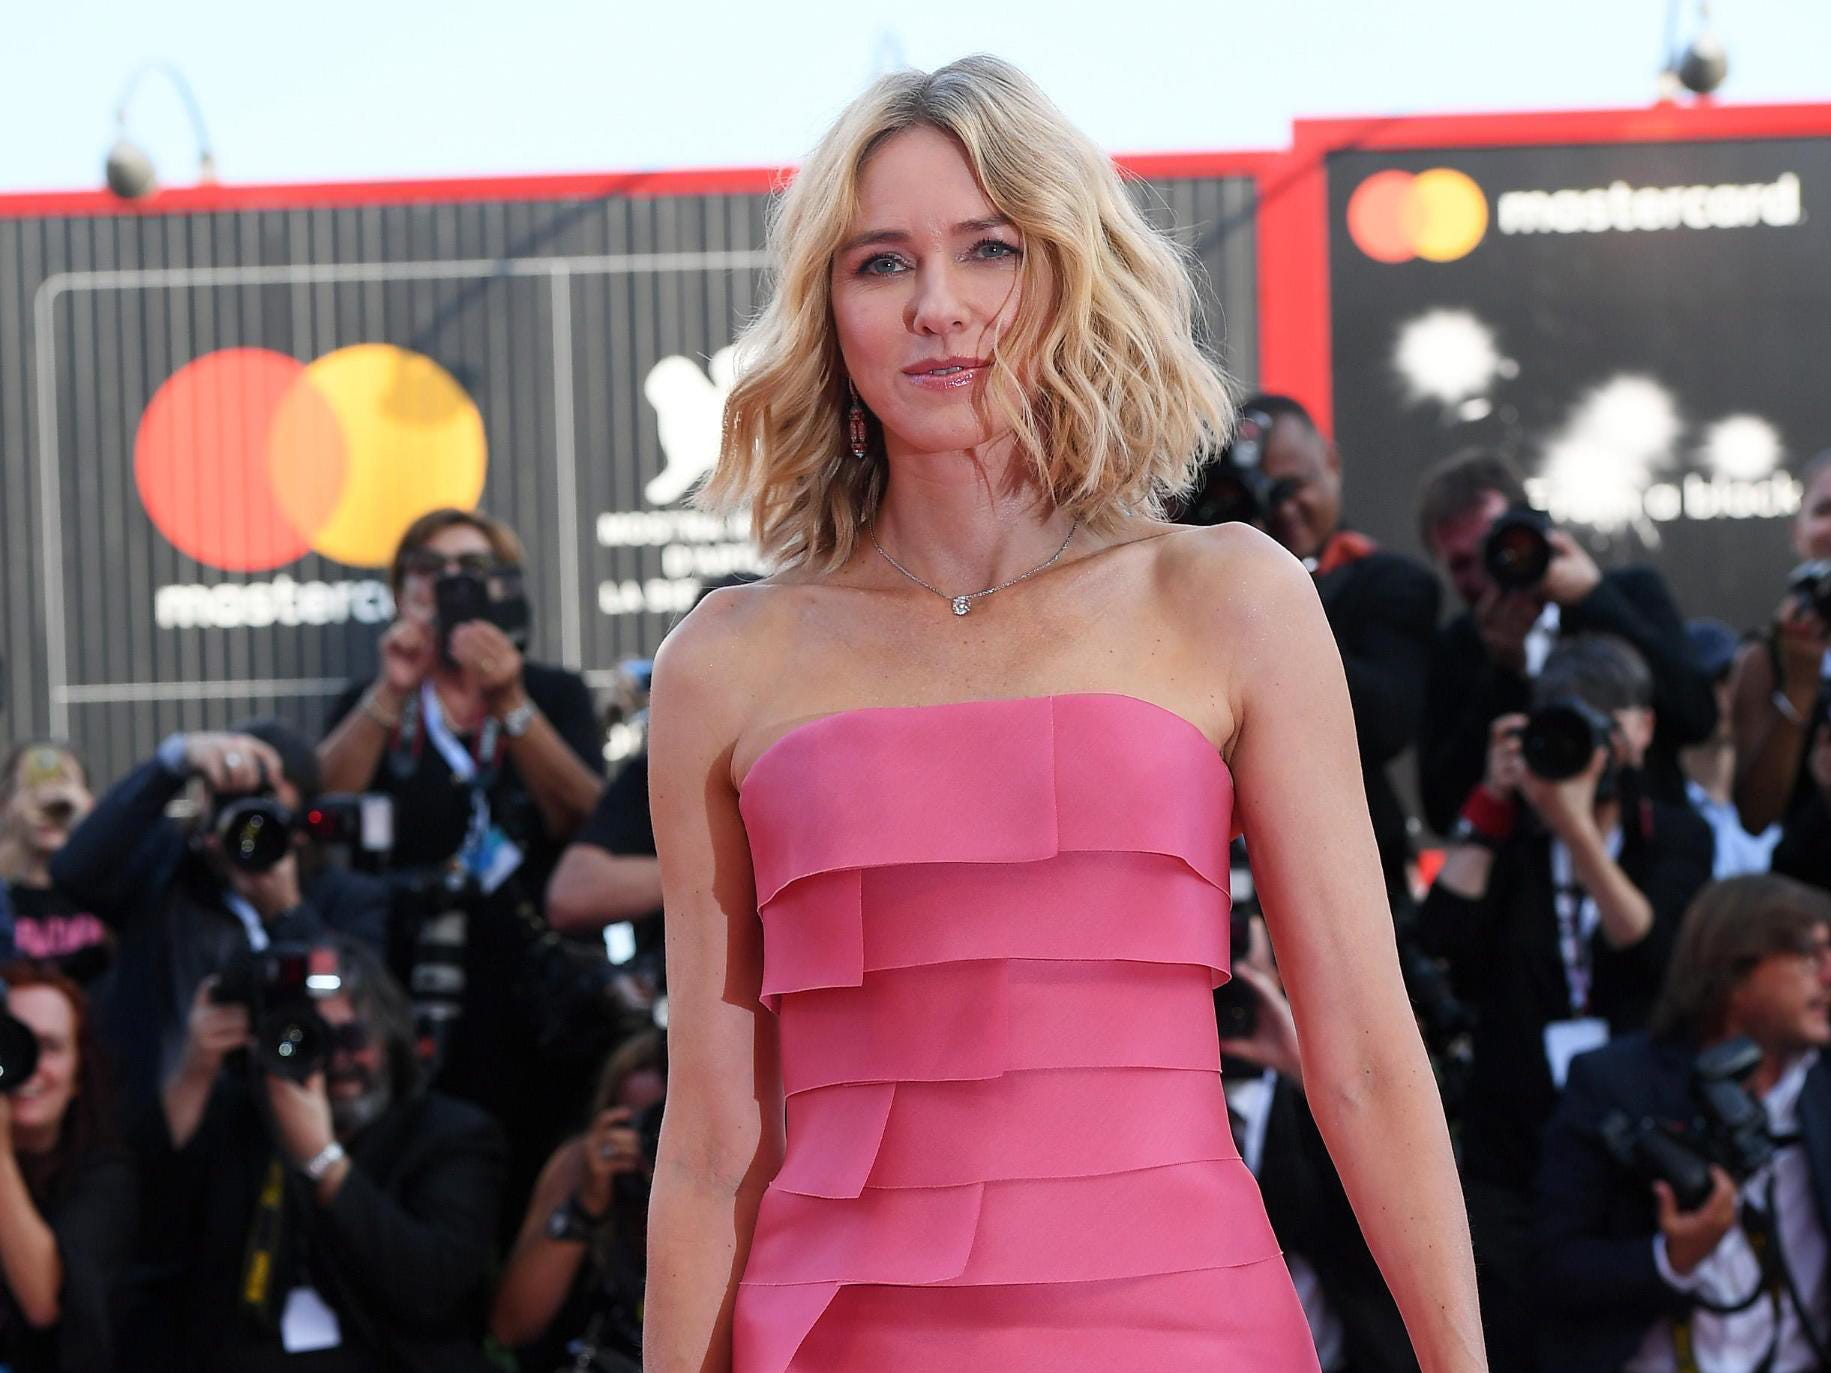 epa06982148 Member of the 'Venezia 75' jury Australian actress Naomi Watts arrives for the opening ceremony and screening of 'First Man' at the 75th annual Venice International Film Festival, in Venice, Italy, 29 August 2018. The festival runs from 29 August to 08 September.  EPA-EFE/CLAUDIO ONORATI